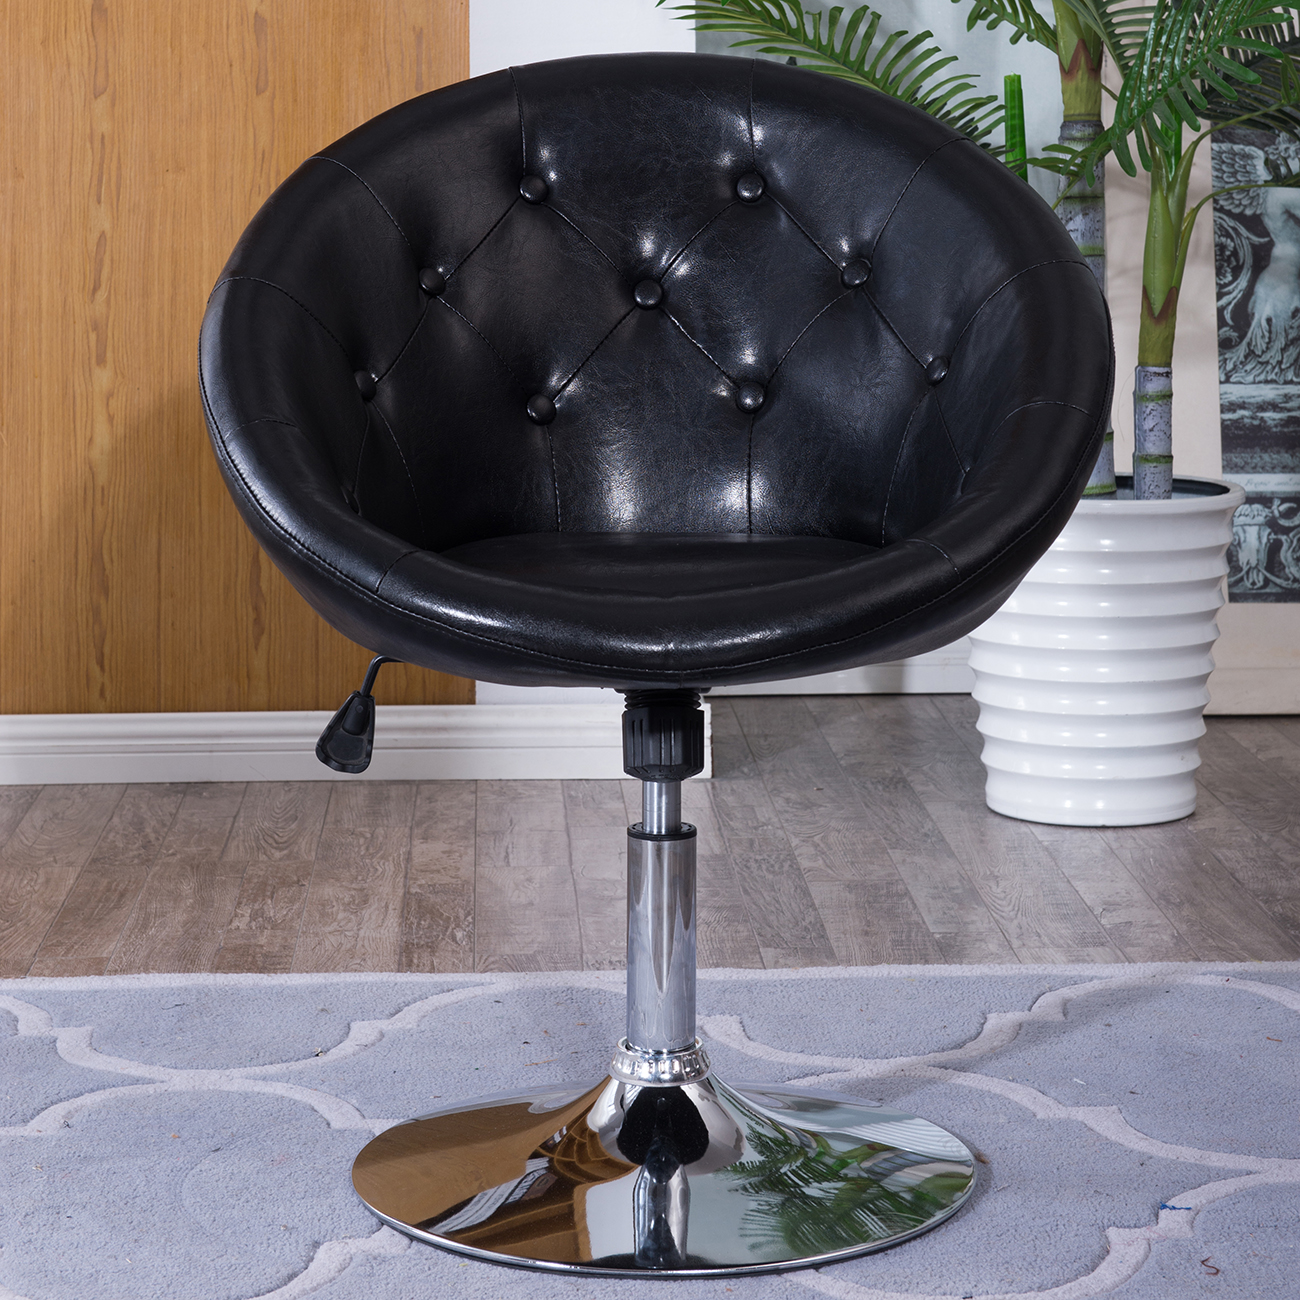 Round Back Swivel Black Chair Vanity Makeup Vinyl Stool